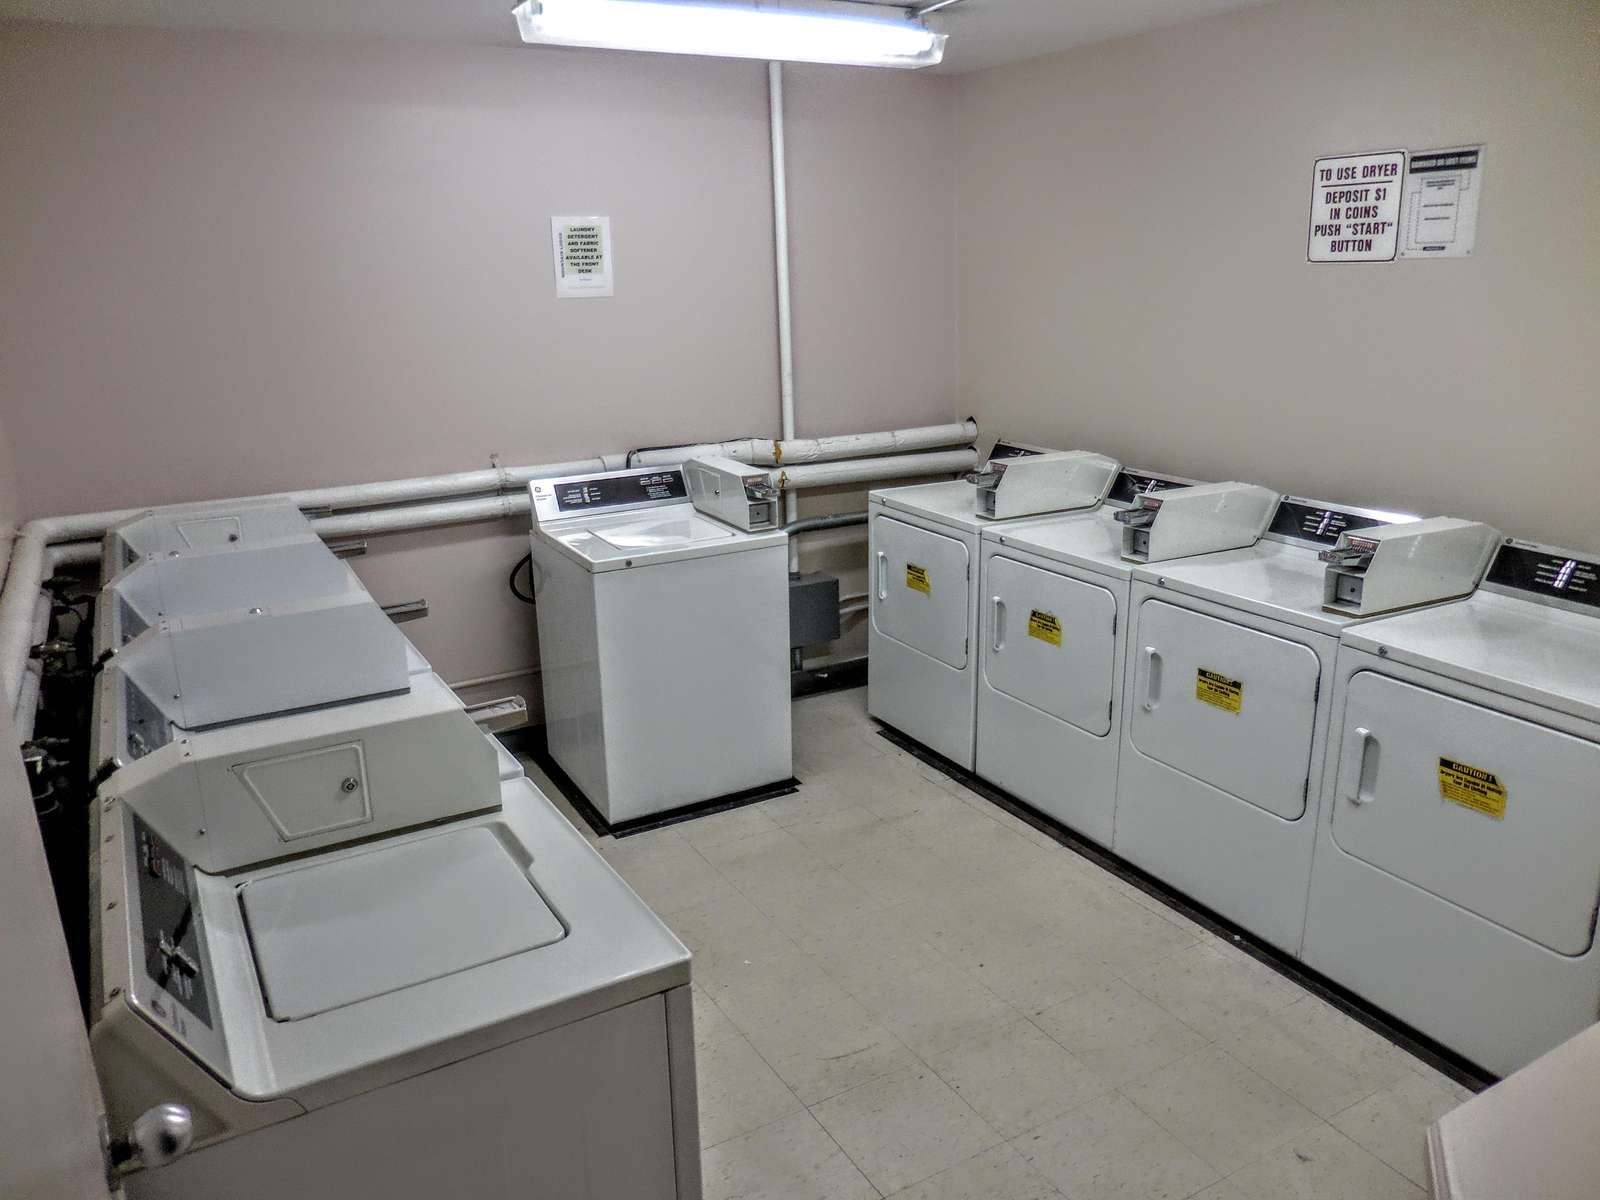 Coin-operated laundry facilities are located down the hallway from ML325 (on each floor)